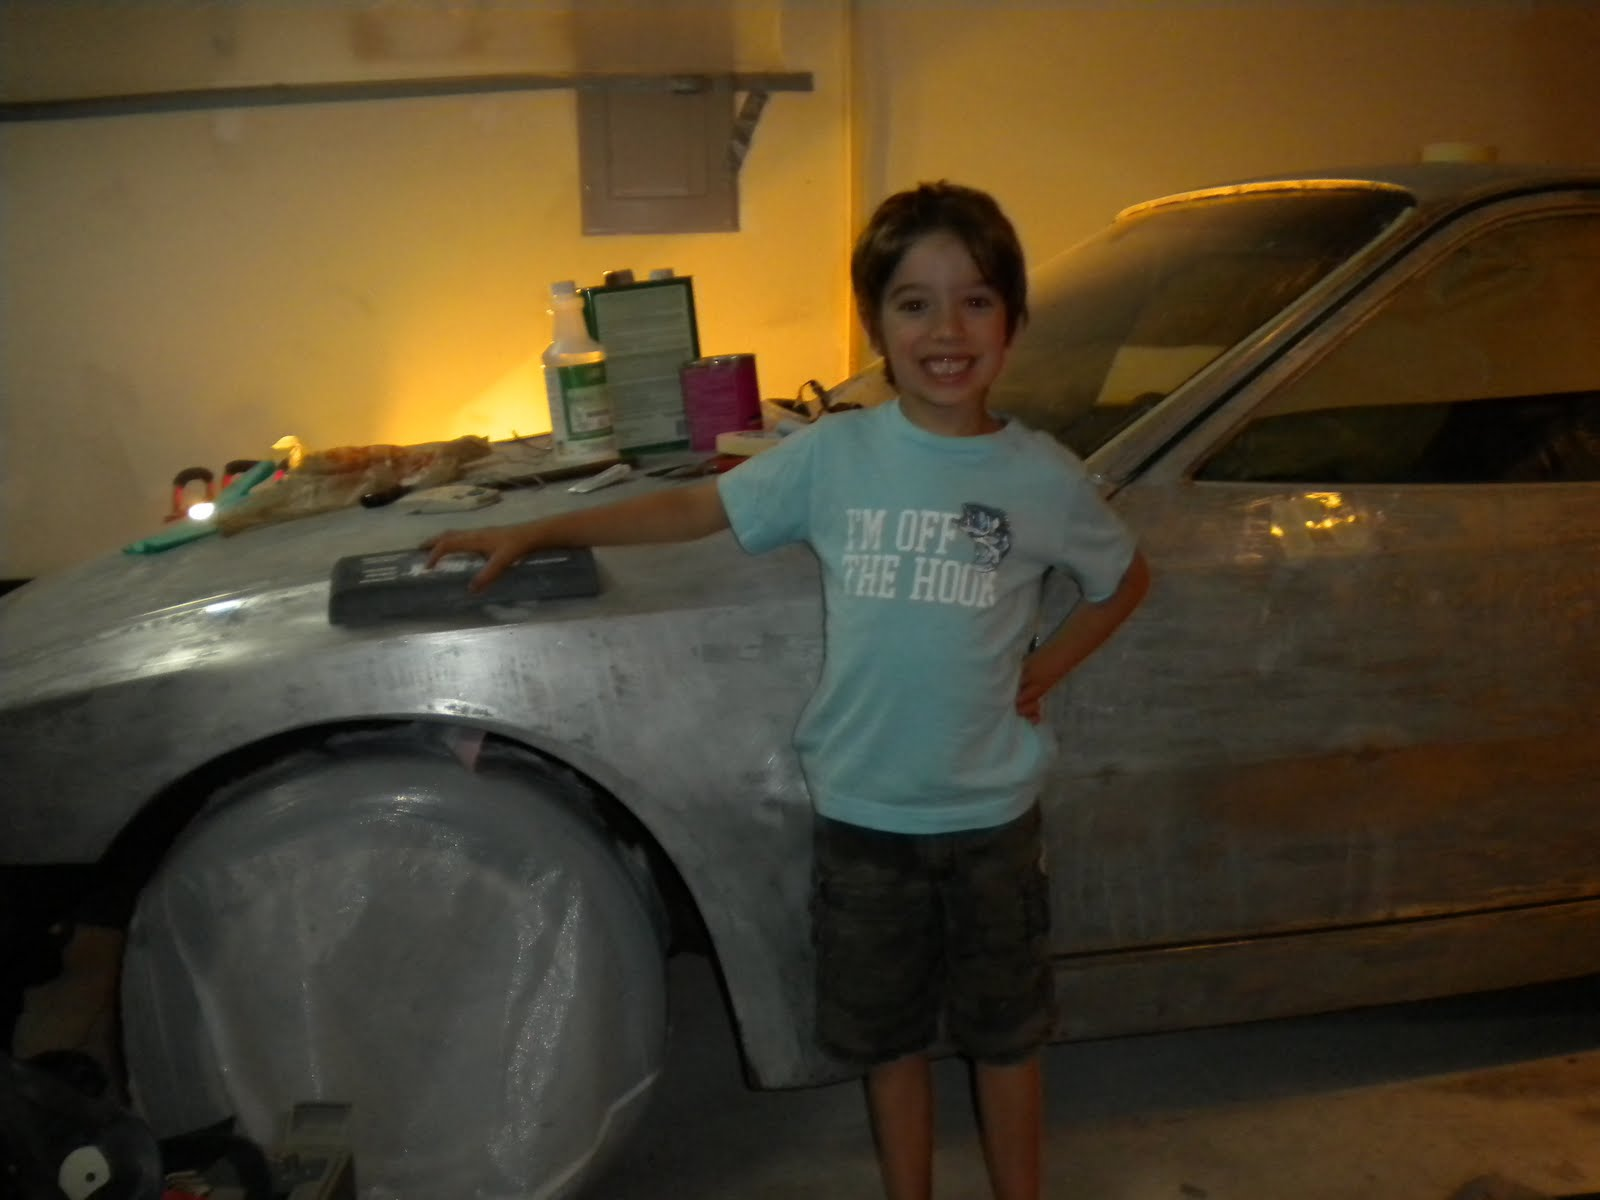 Repainting My 1983 Porsche 944: More Bondo and my son helps